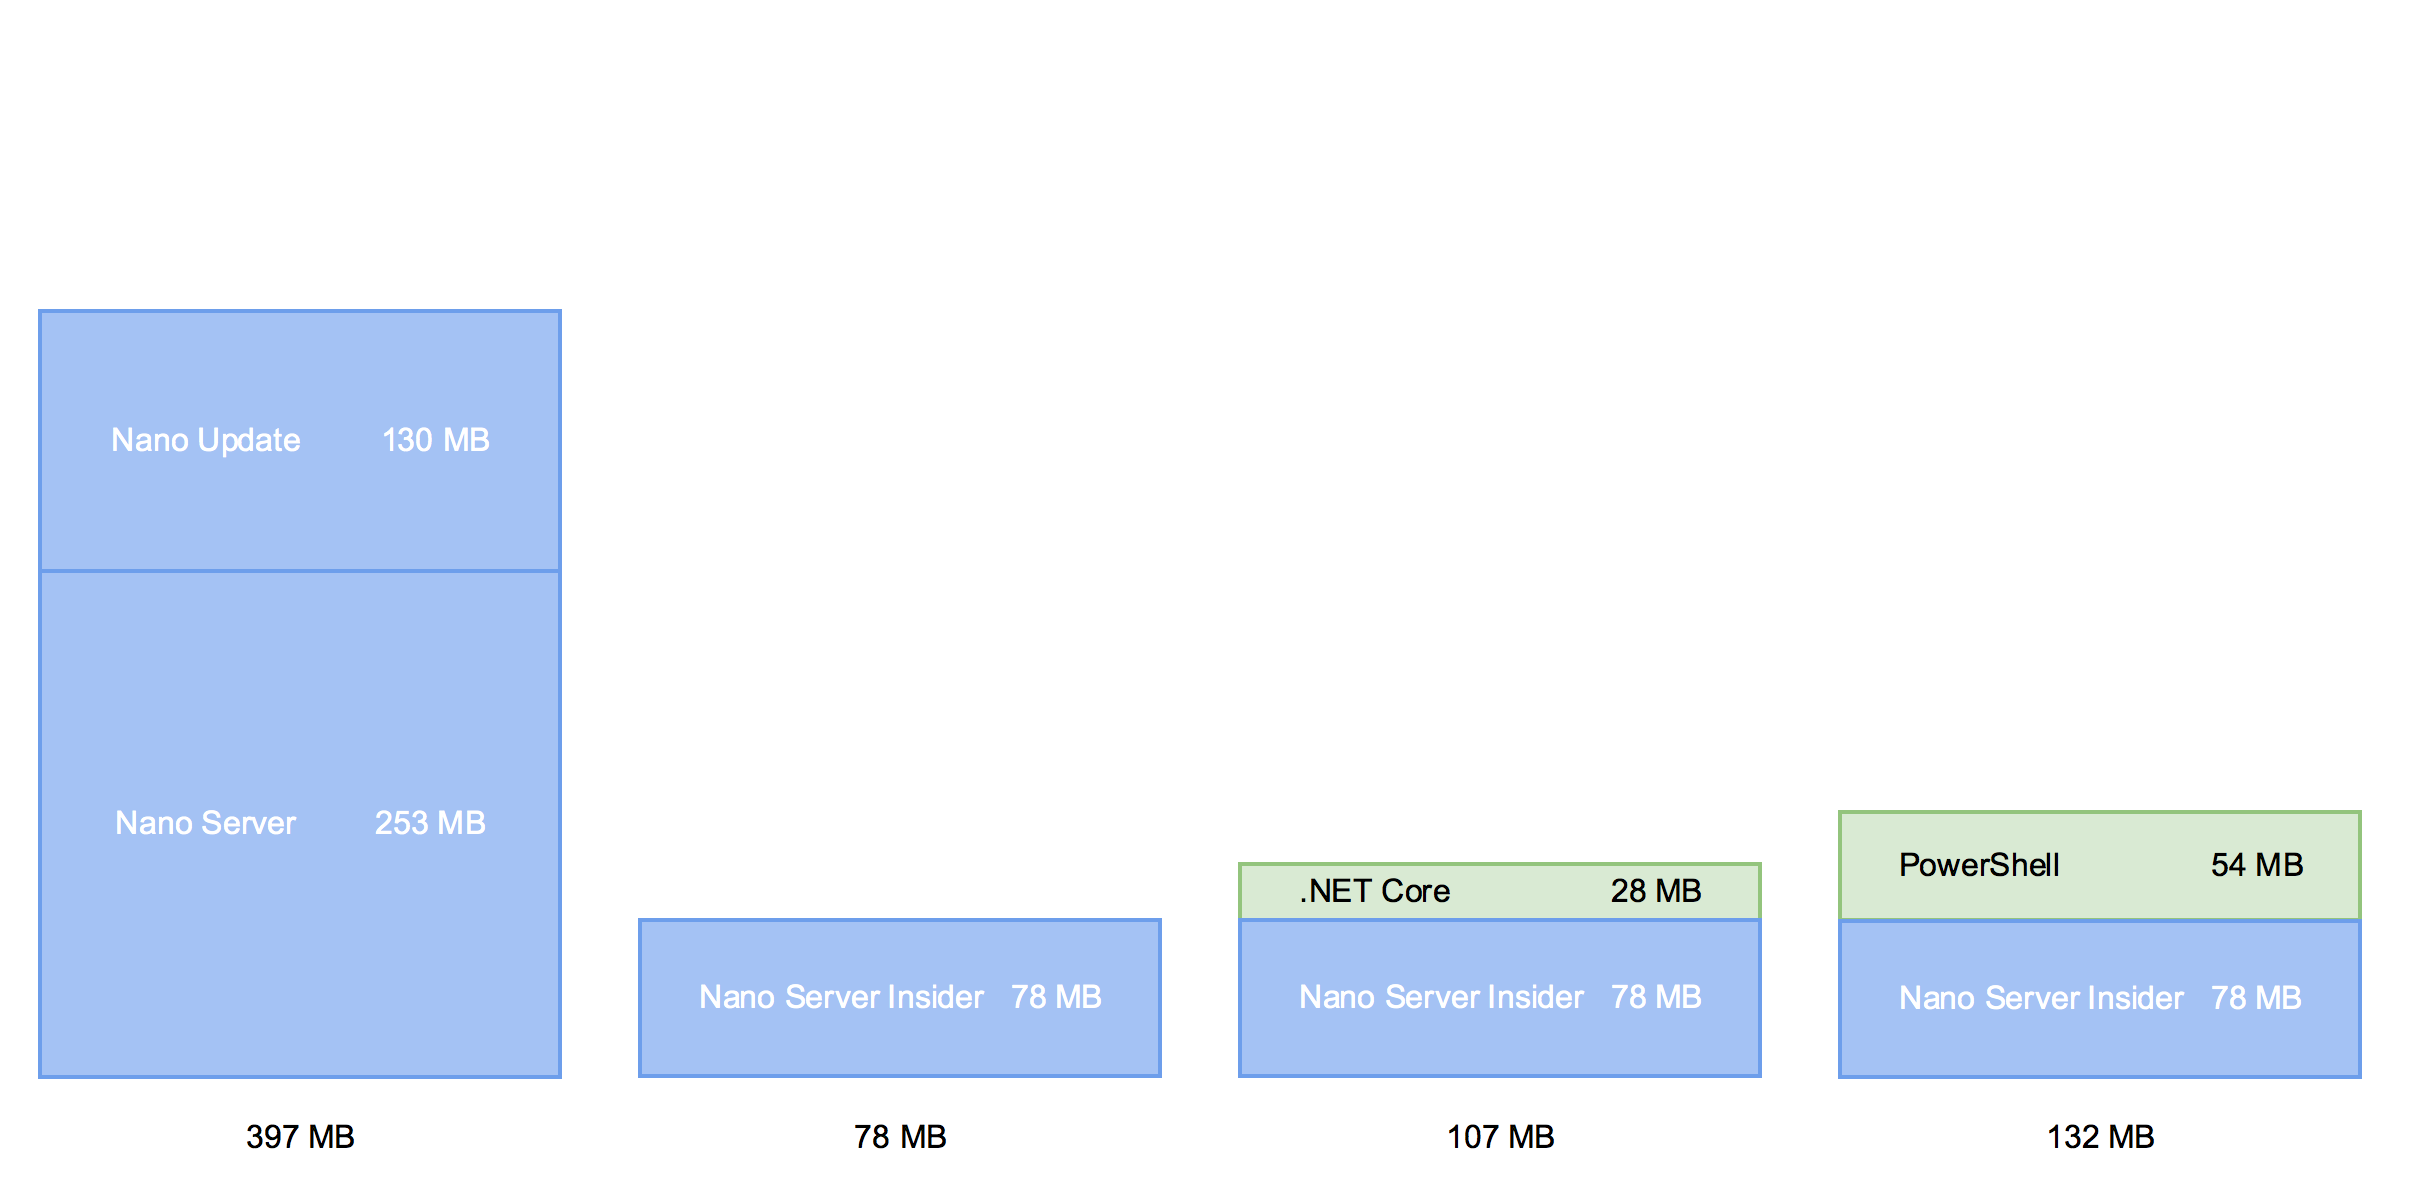 NanoServer sizes